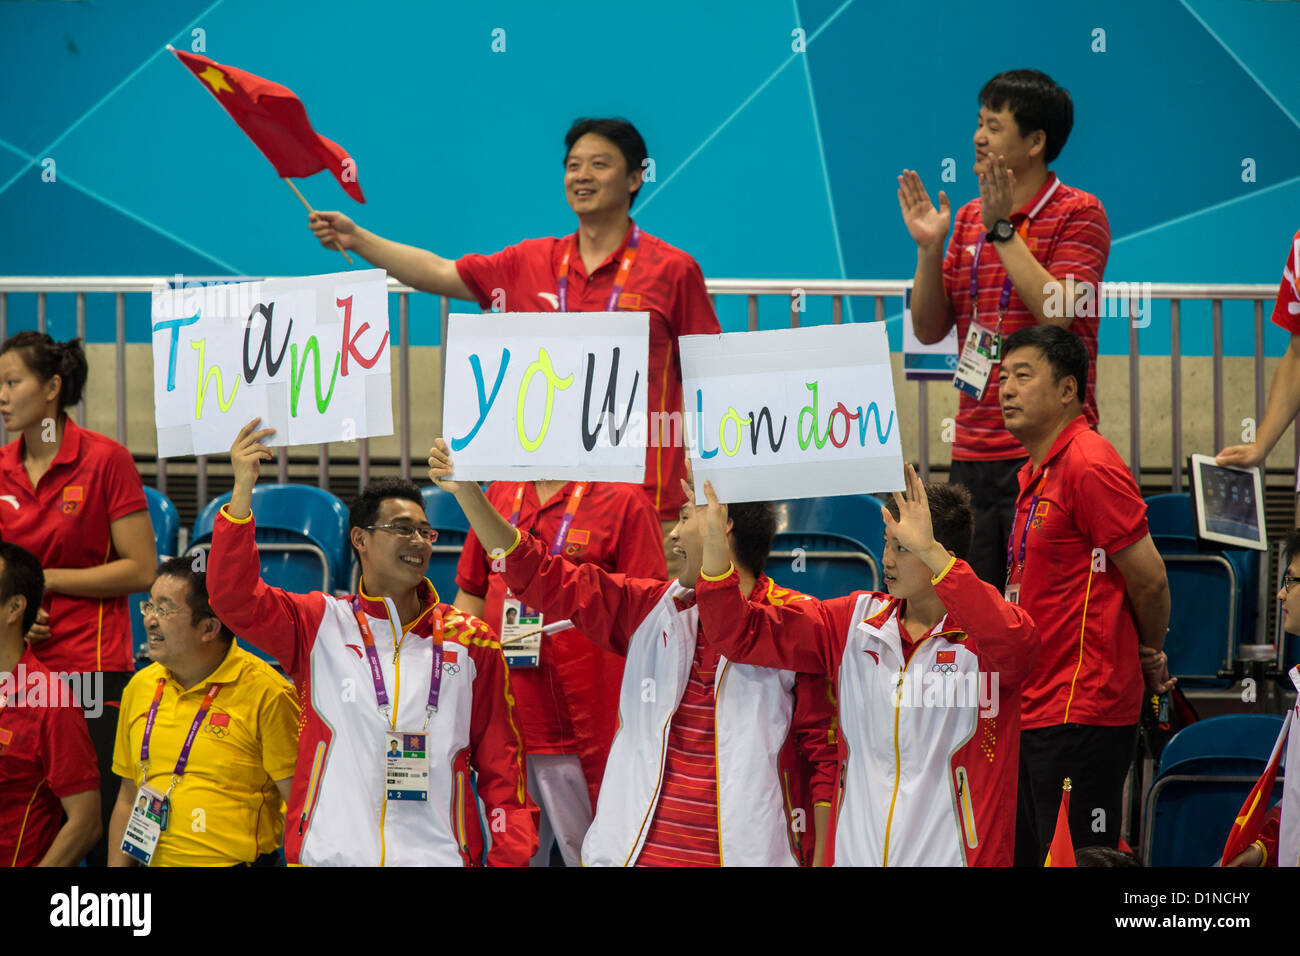 Chinese swimmers and coaches at the Olympic Summer Games, London 2012 - Stock Image